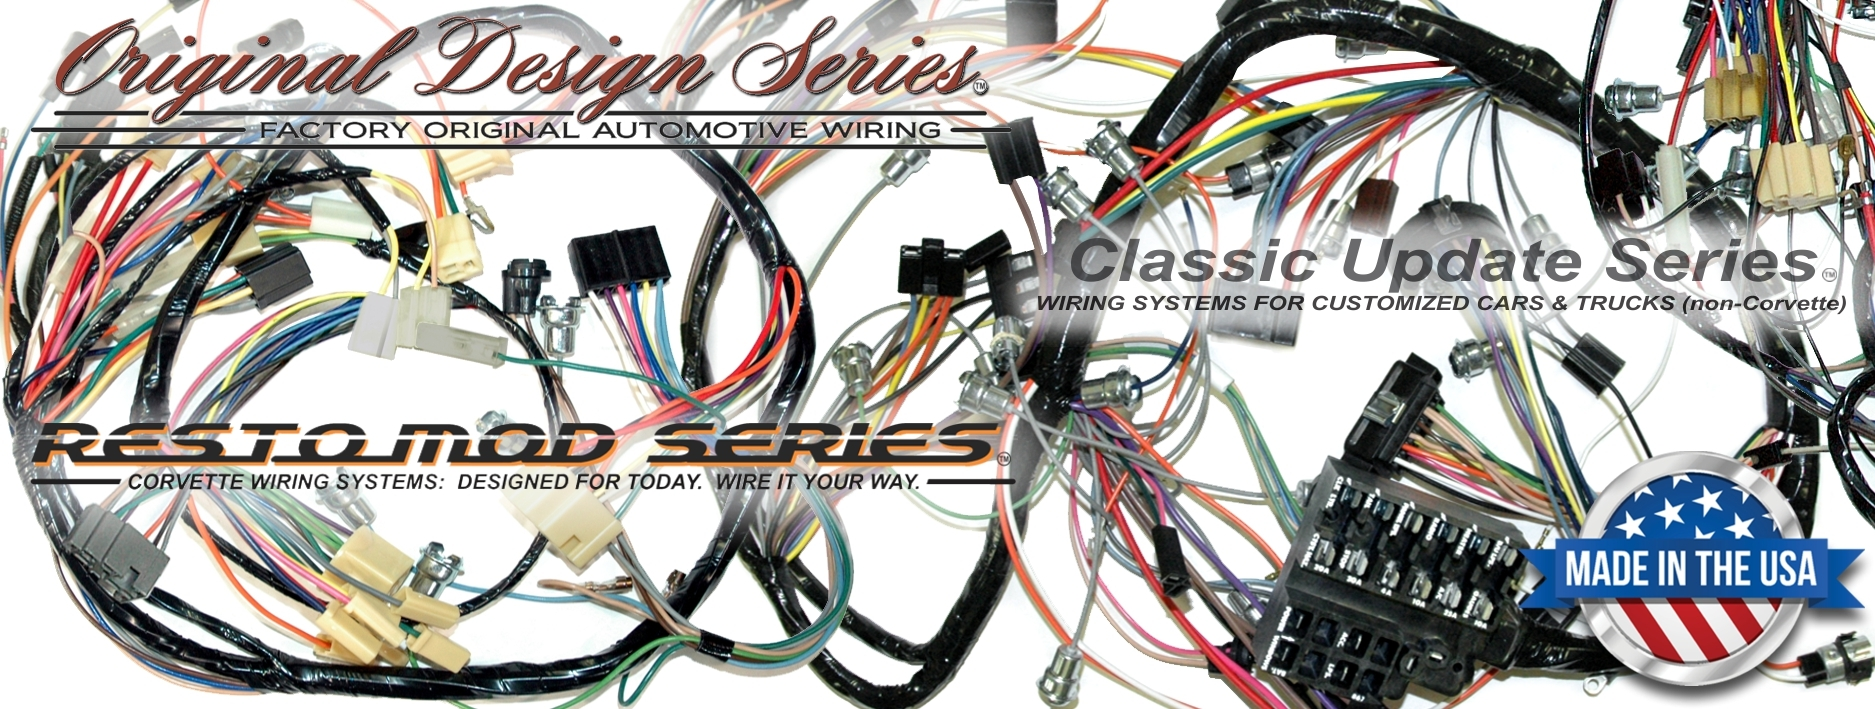 hight resolution of exact oem reproduction wiring harnesses and restomod wiring systems power supply for trucks wiring harness for trucks